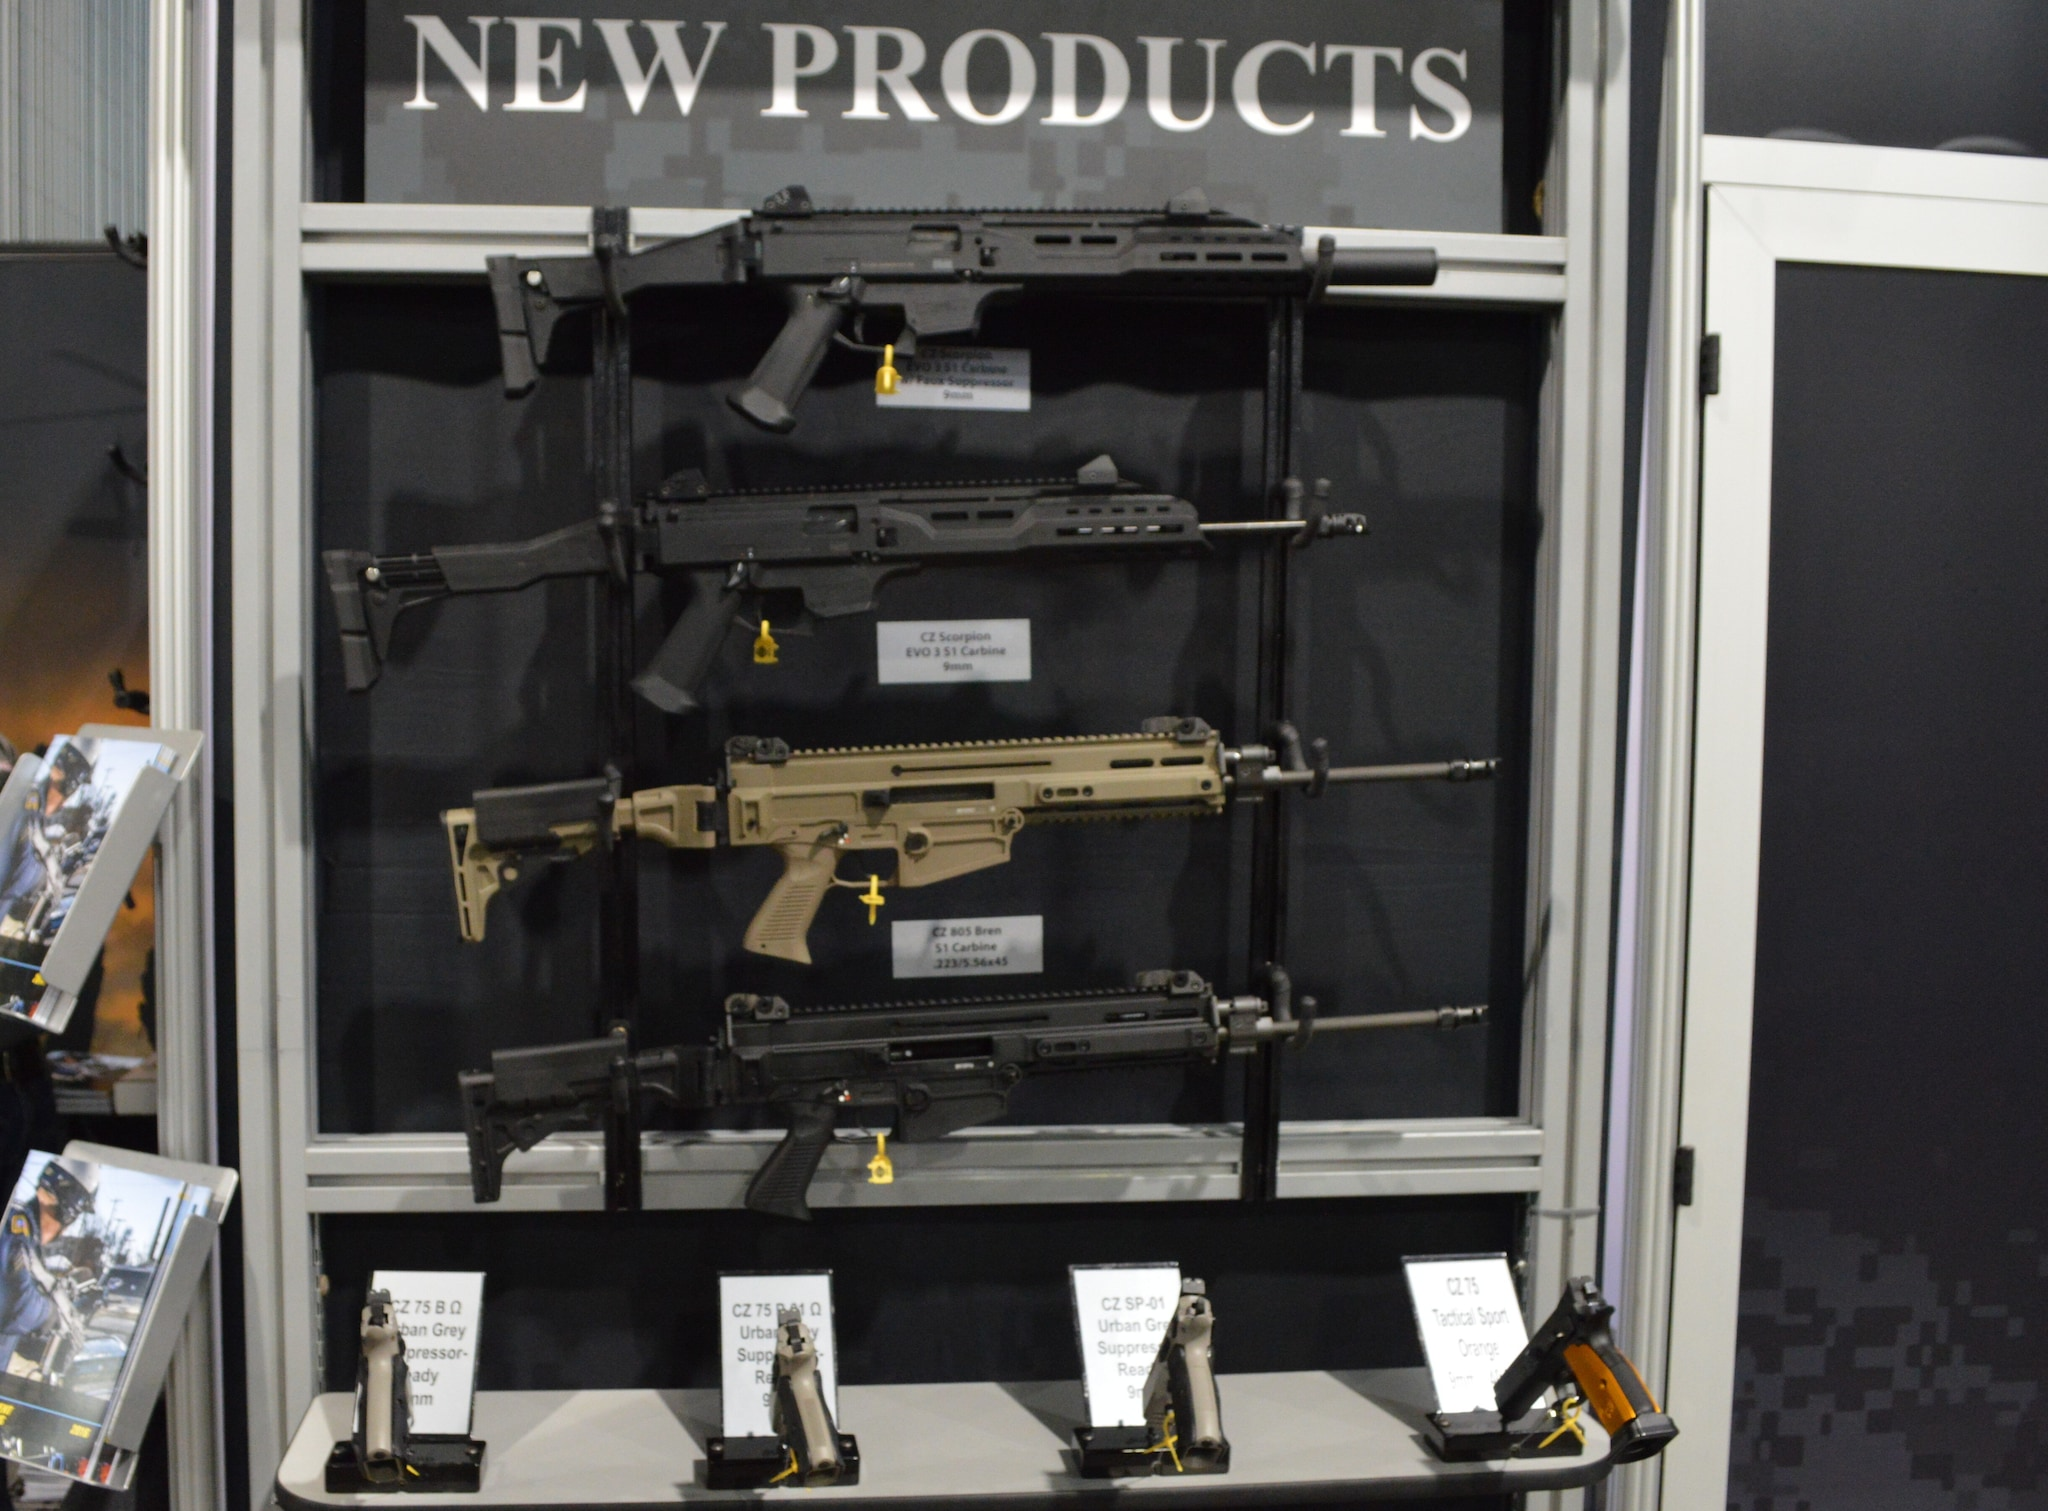 CZ's updated Scorpion EVO 2 S1 carbines, Bren S1 carbines, and a lineup of pistols including the CZ Tactical Sport Orange on the far right. (Photo: Kristin Alberts)